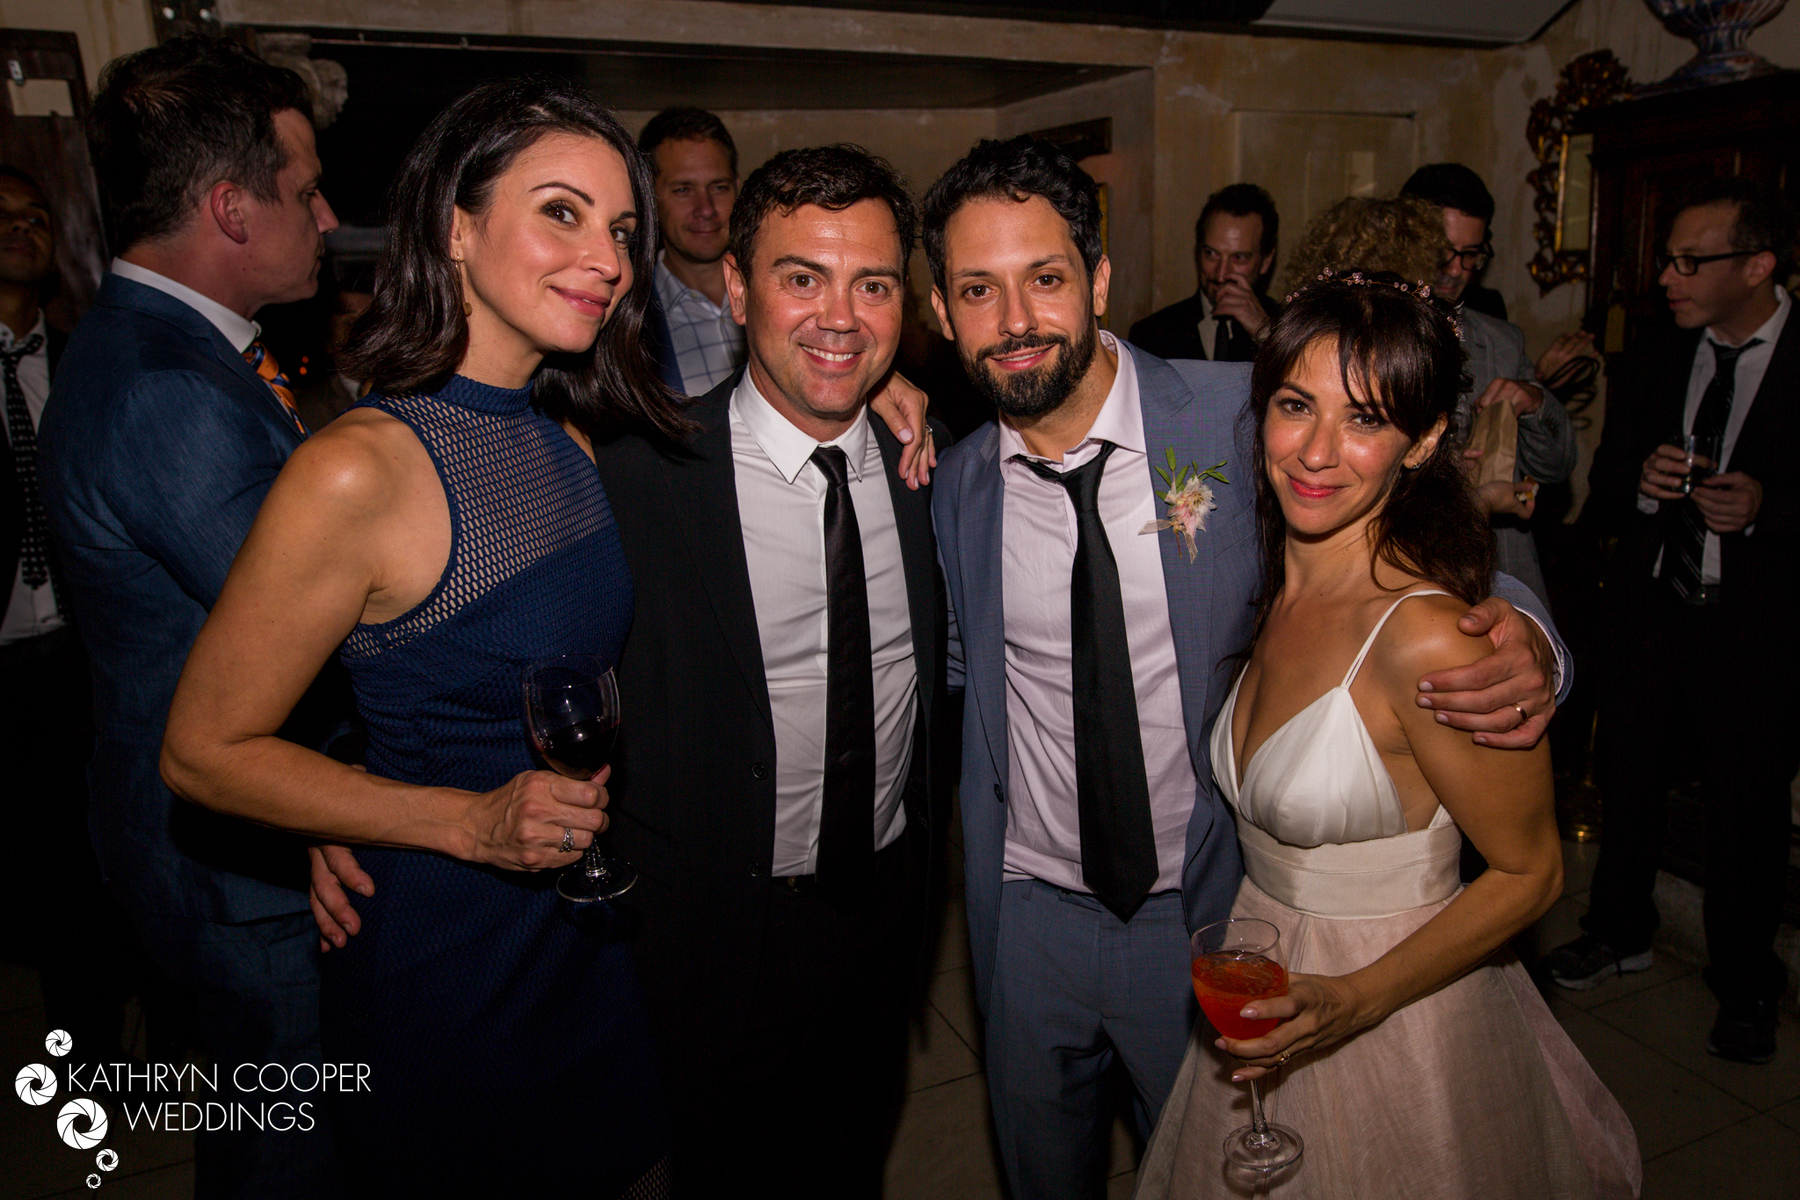 Celebrity wedding guests Joe Lo Truglio and Beth Dover for Kathryn Cooper Weddings